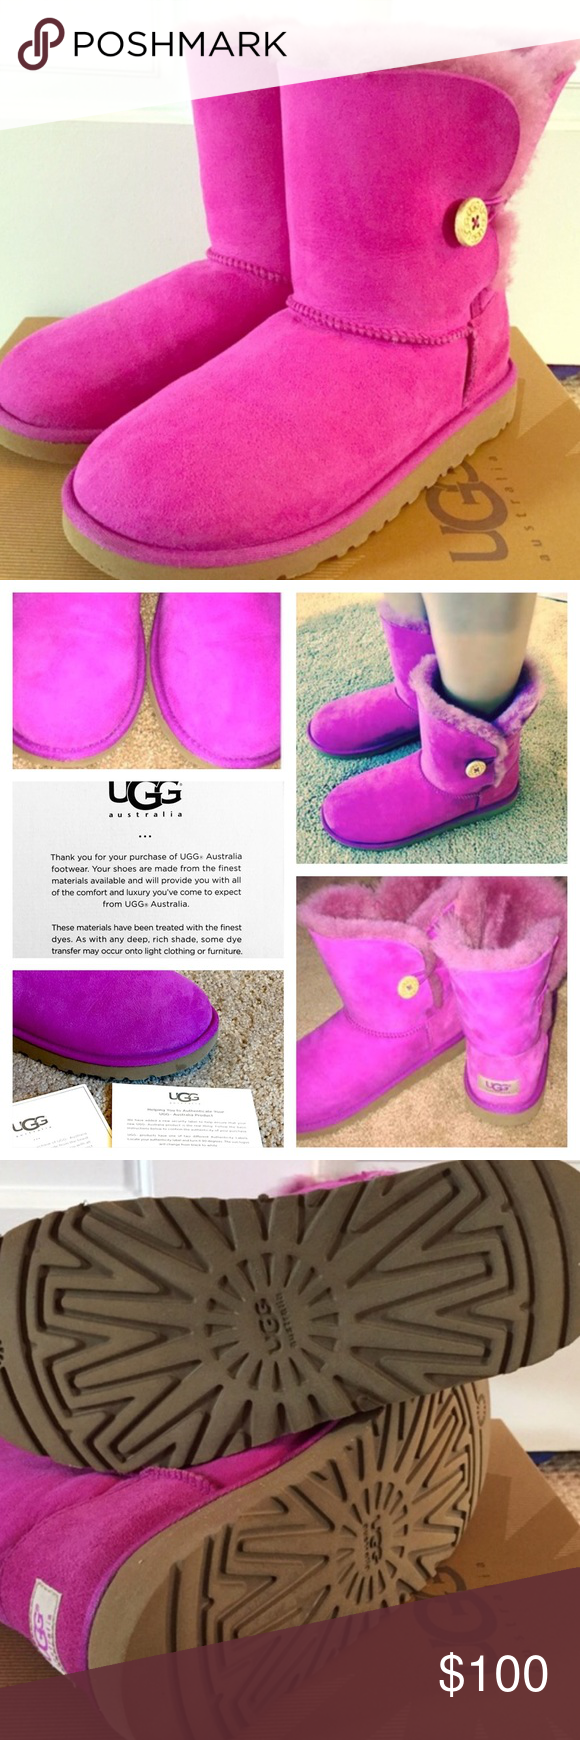 Magenta Pink Authentic Australian UGG Bailey Boots Magenta Pink Authentic Australian UGG Bailey Boots, Size 6 K (Kids). I wear a size 8, and the 6K is an equivalent to an adult size 7.5-8. SEE BOX SIZE!! DOES FIT SIZE 8!!!!!!!!!!!!!. Practically brand new. Does have small spot on front bottom of shoe (see 2nd/last picture). Made in China. Includes pics of the interior tags, security label, and box label. See 2nd picture of me modeling them and other angles of the boots. Security label turns…